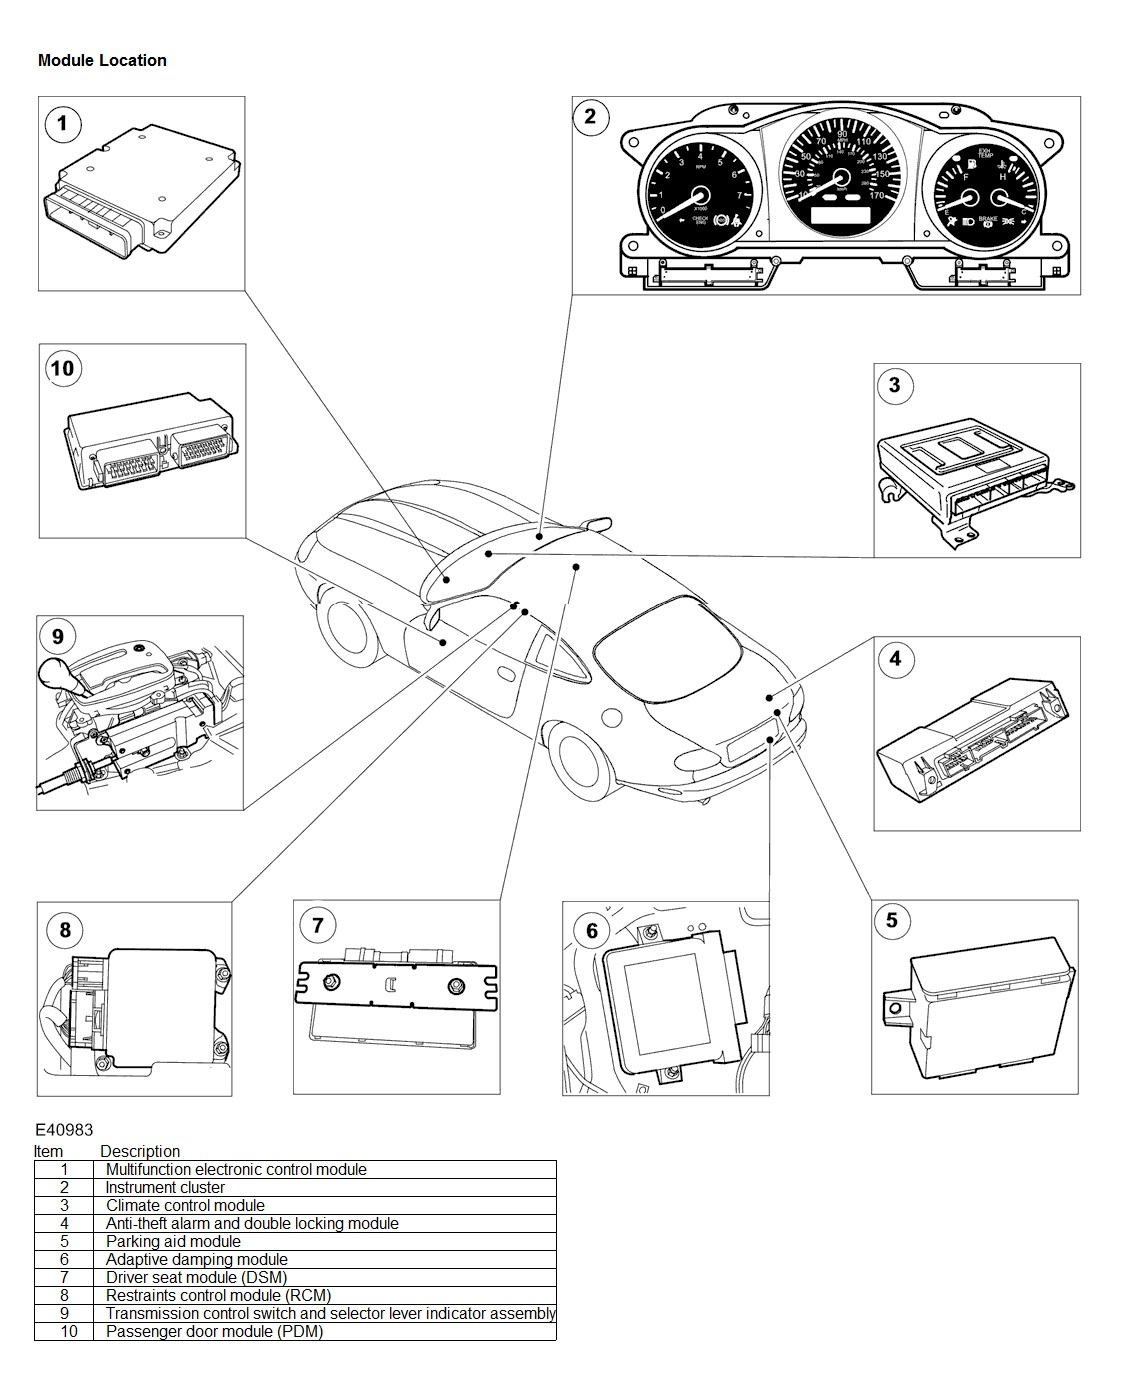 a 1996 jaguar xj6 fuse box layout